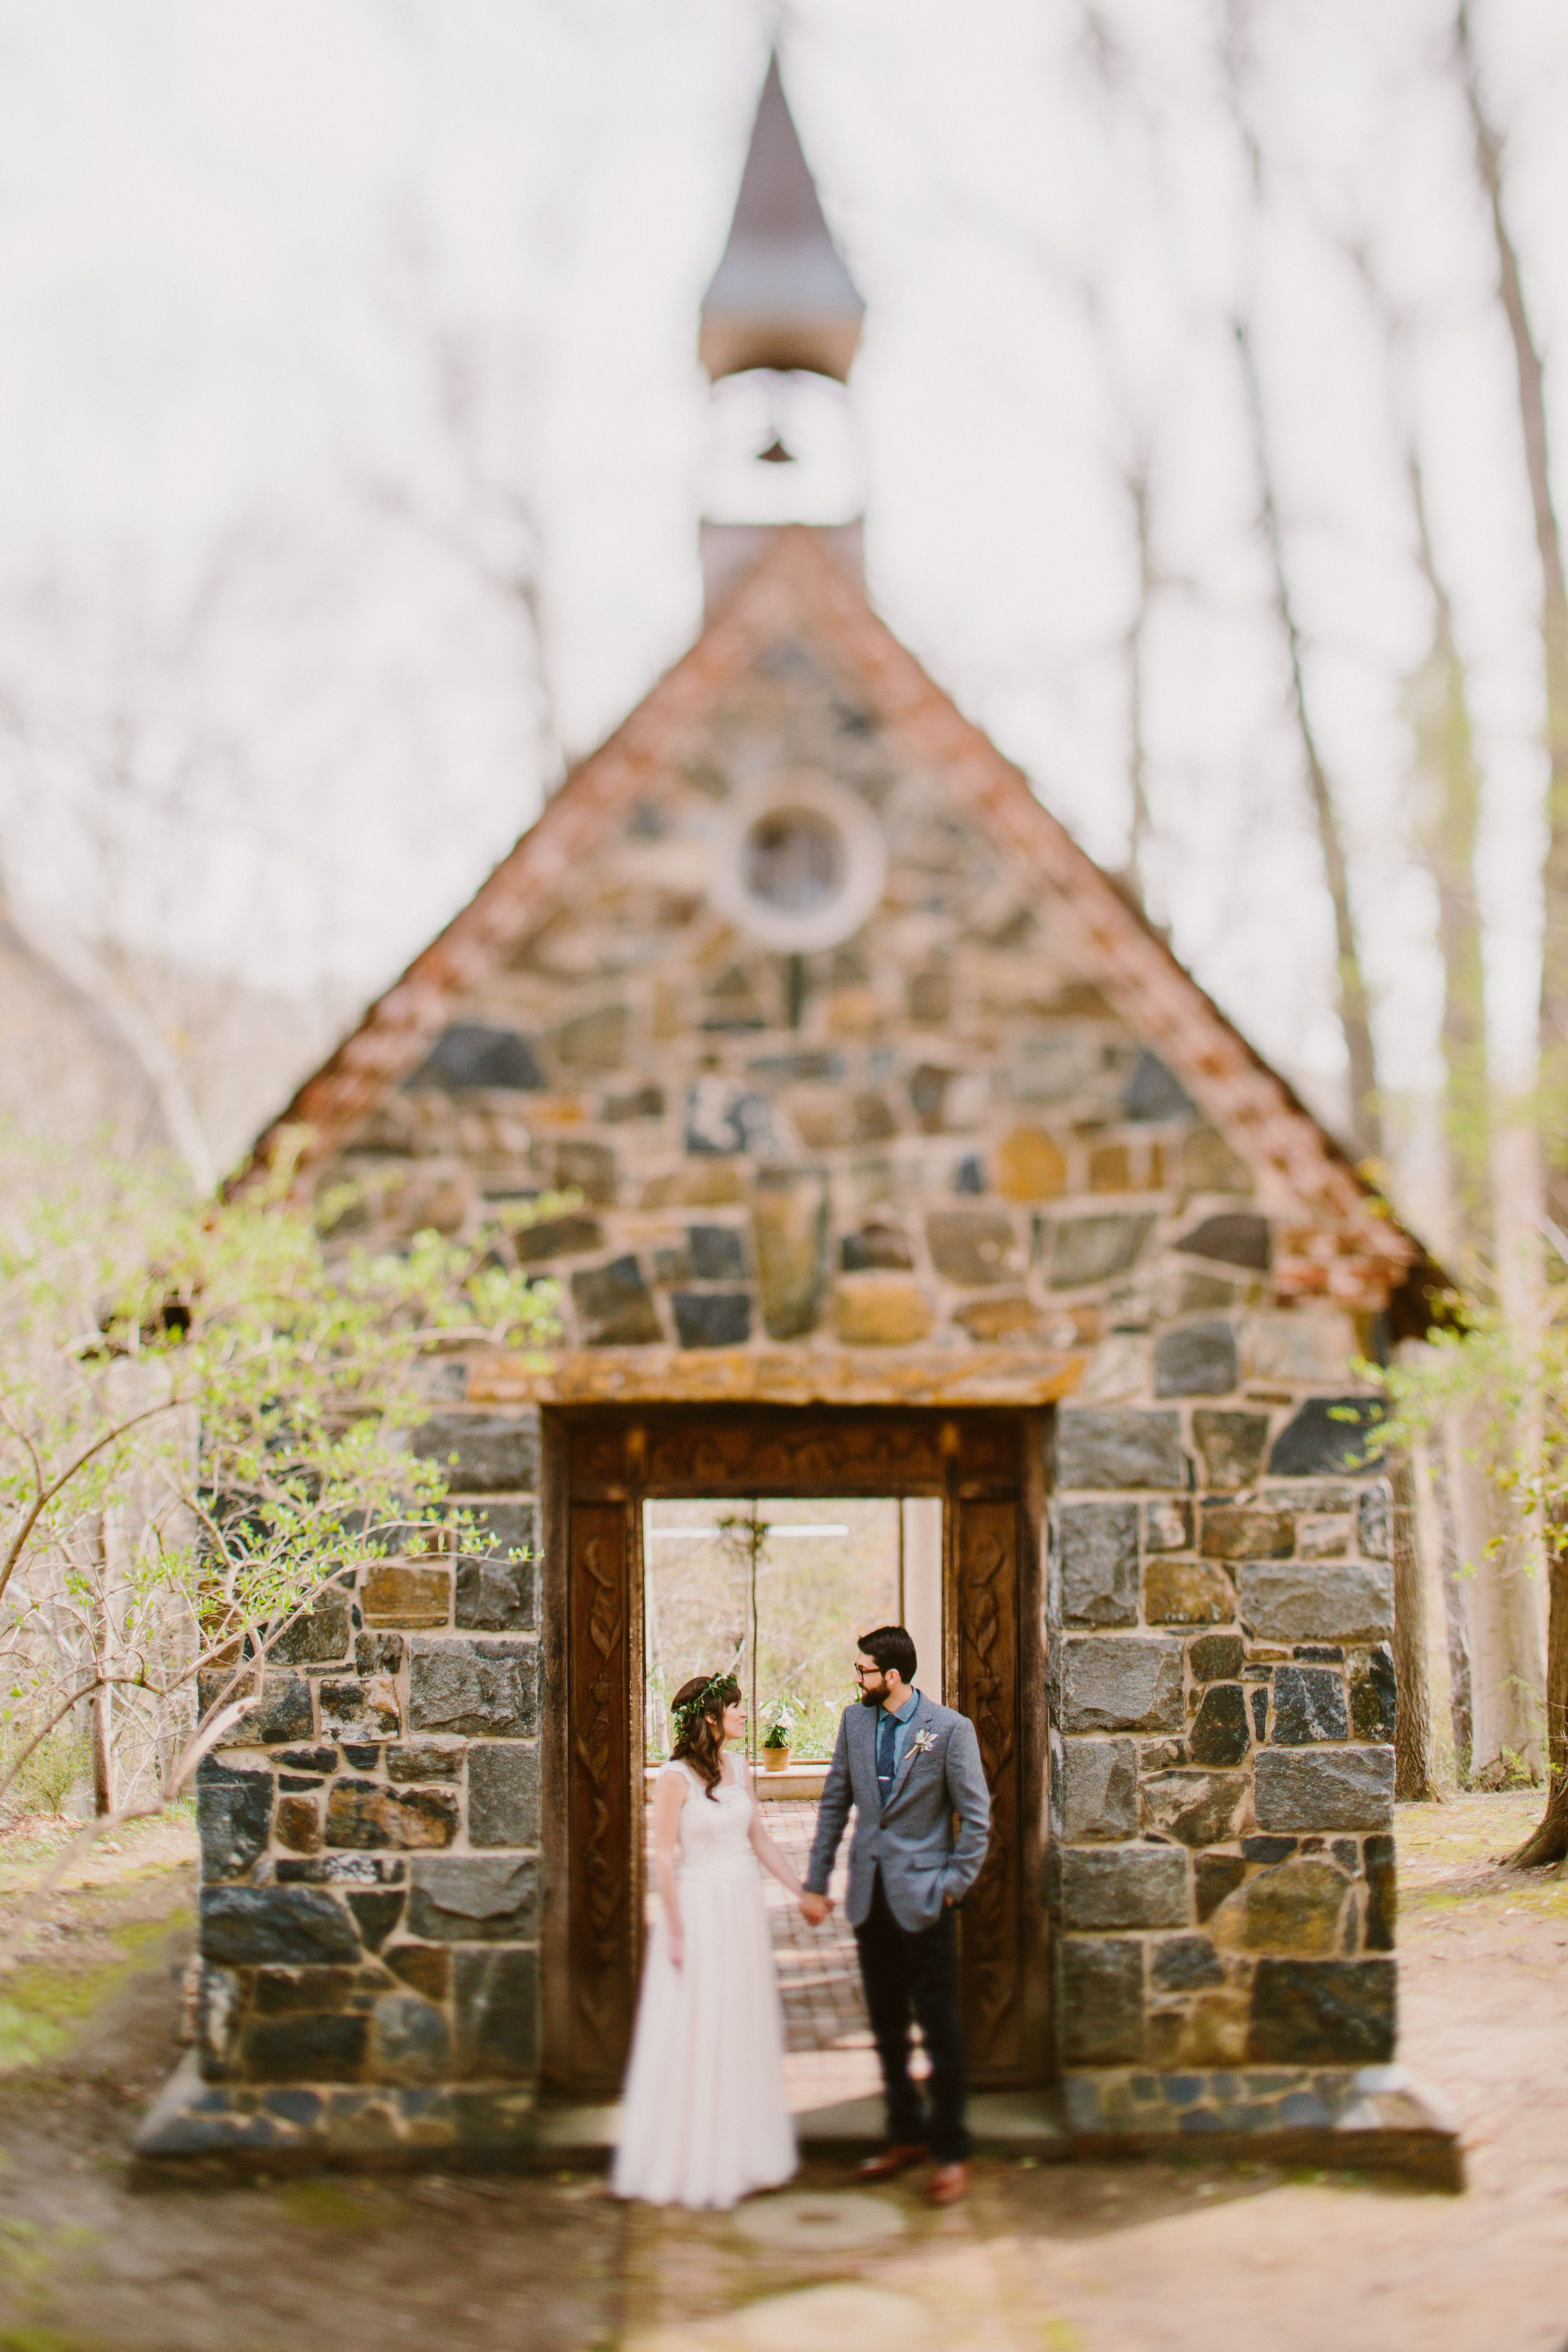 A Simply Natural Wedding at the Washington at Historic Yellow Springs in Chadds Ford, Pennsylvania